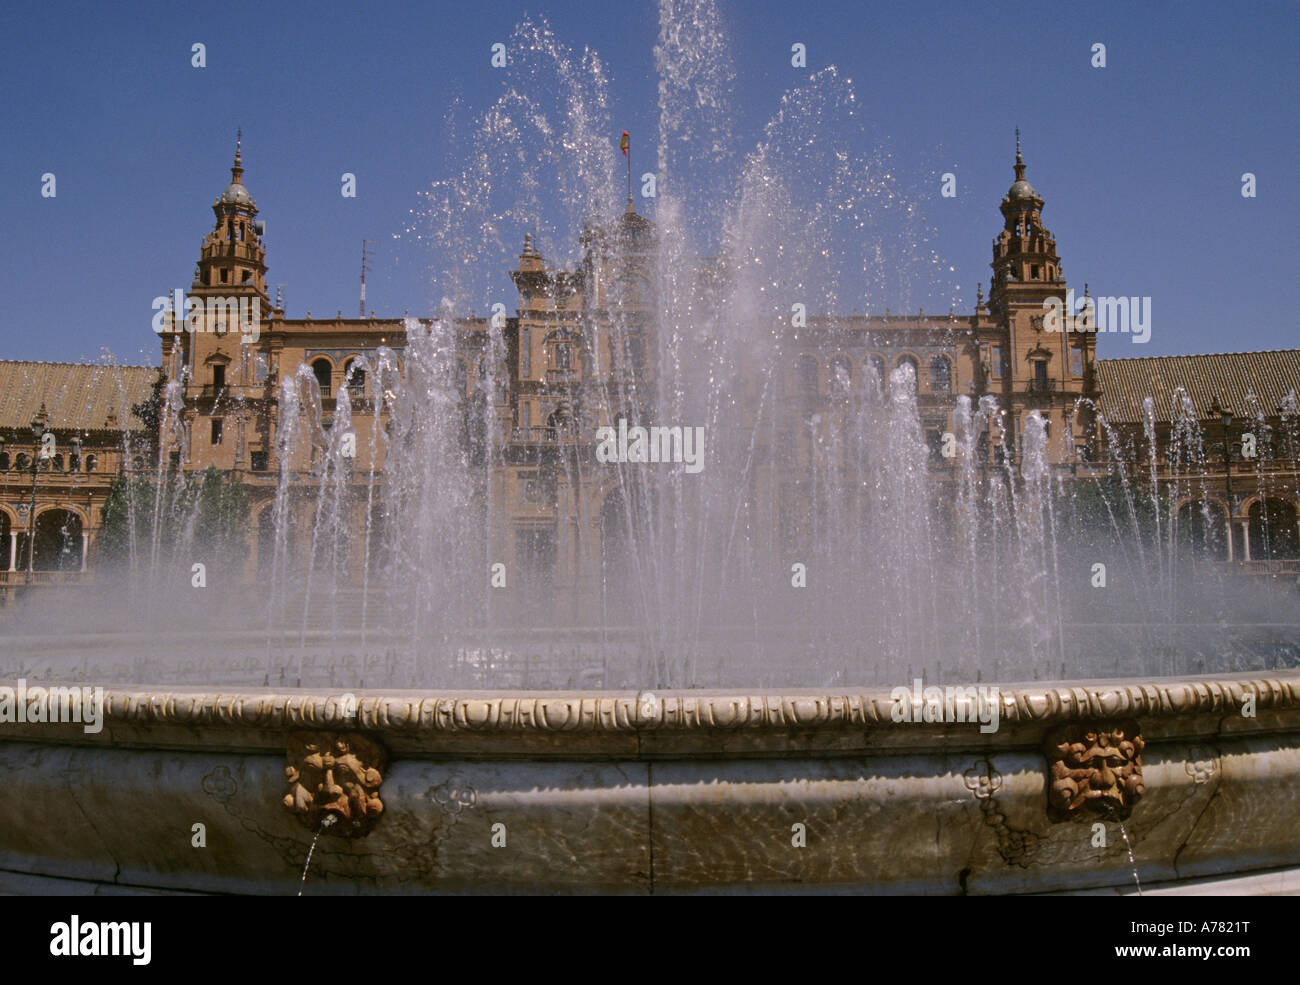 a fountain beyond the Palacio Espanol in Plaza de Espana Sevilla Andalusia Spain - Stock Image